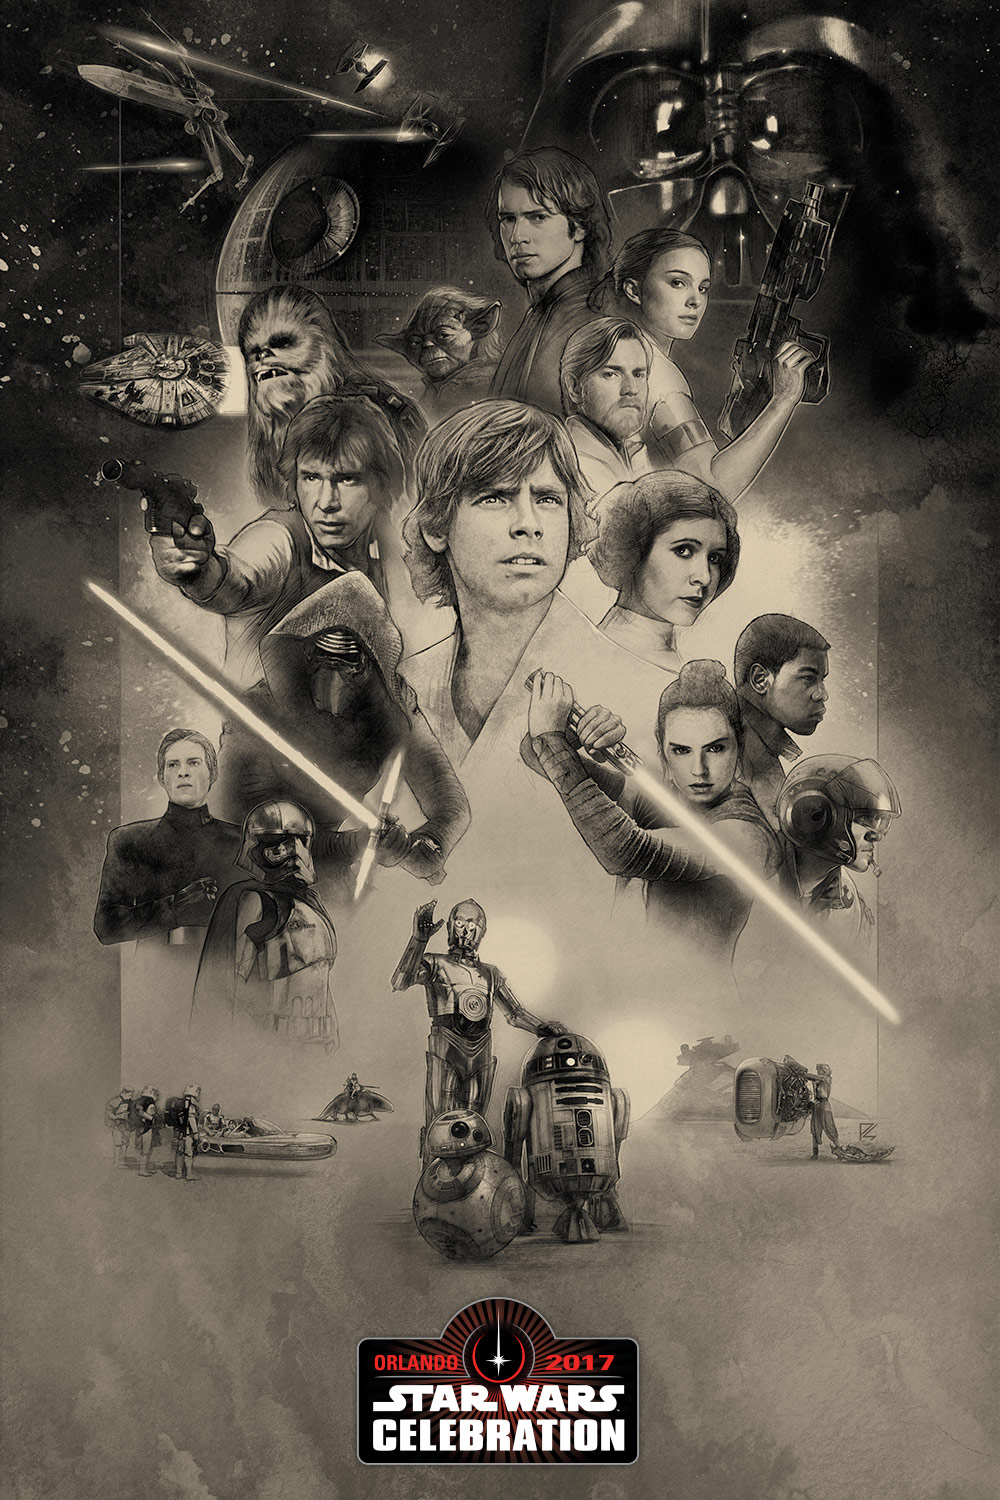 star-wars-celebration-2017-poster.jpg